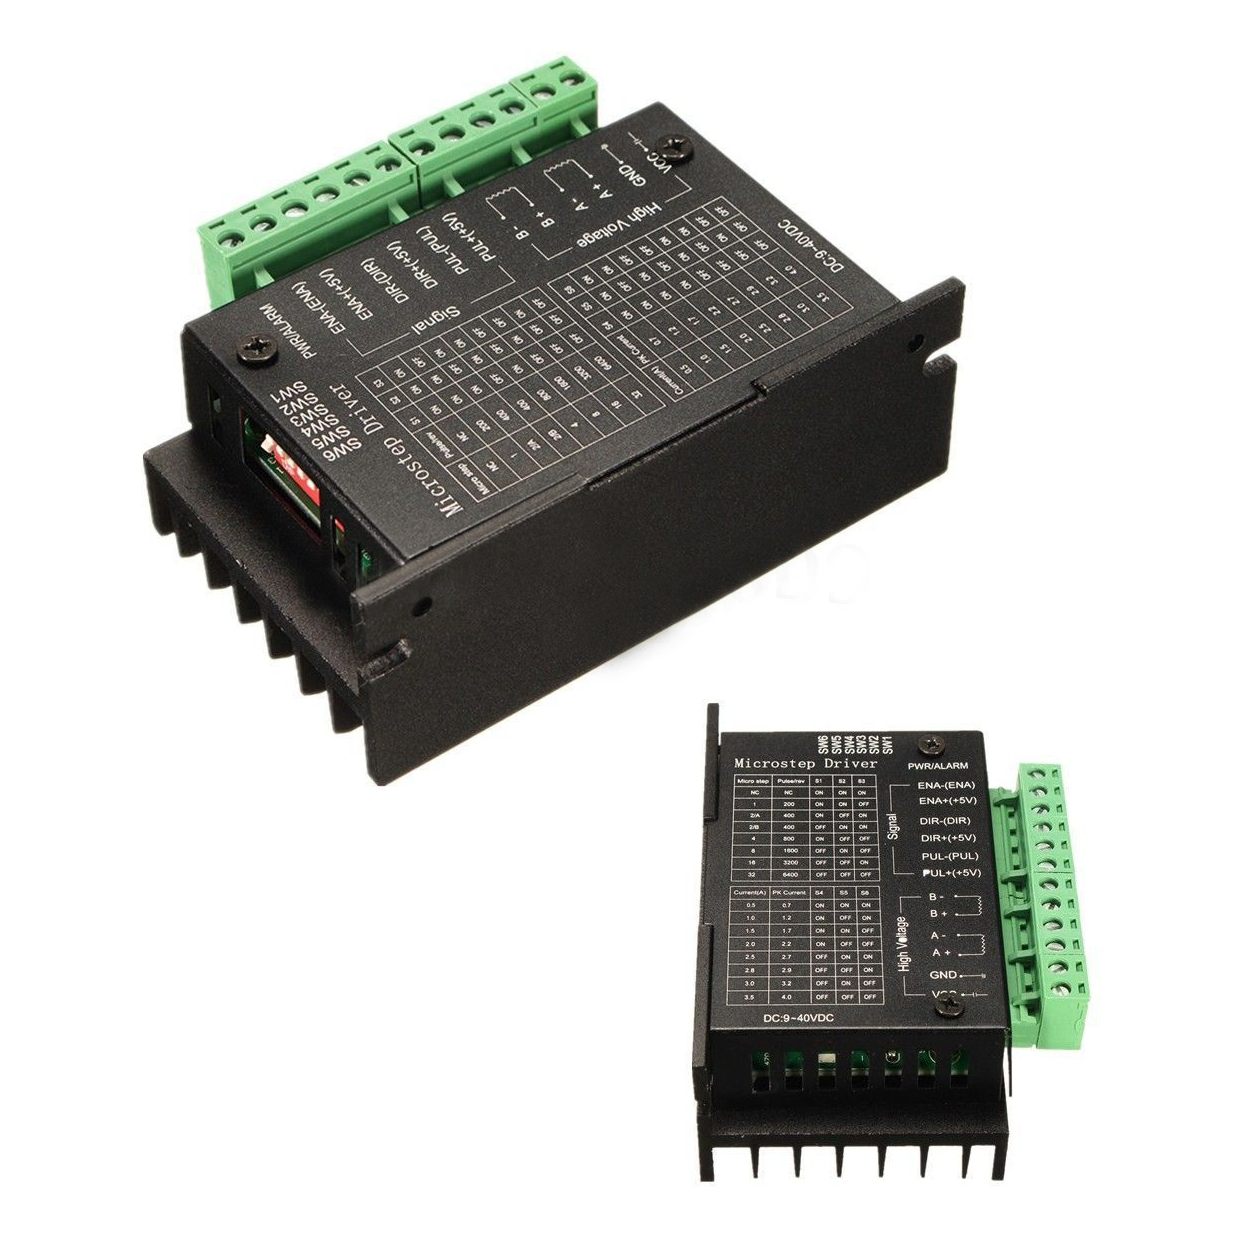 US $7 64 15% OFF|20KHZ CNC Single Axis TB6600 2/4 Phase Hybrid Stepper  Motor Driver Controller Black-in Stepper Motor from Home Improvement on